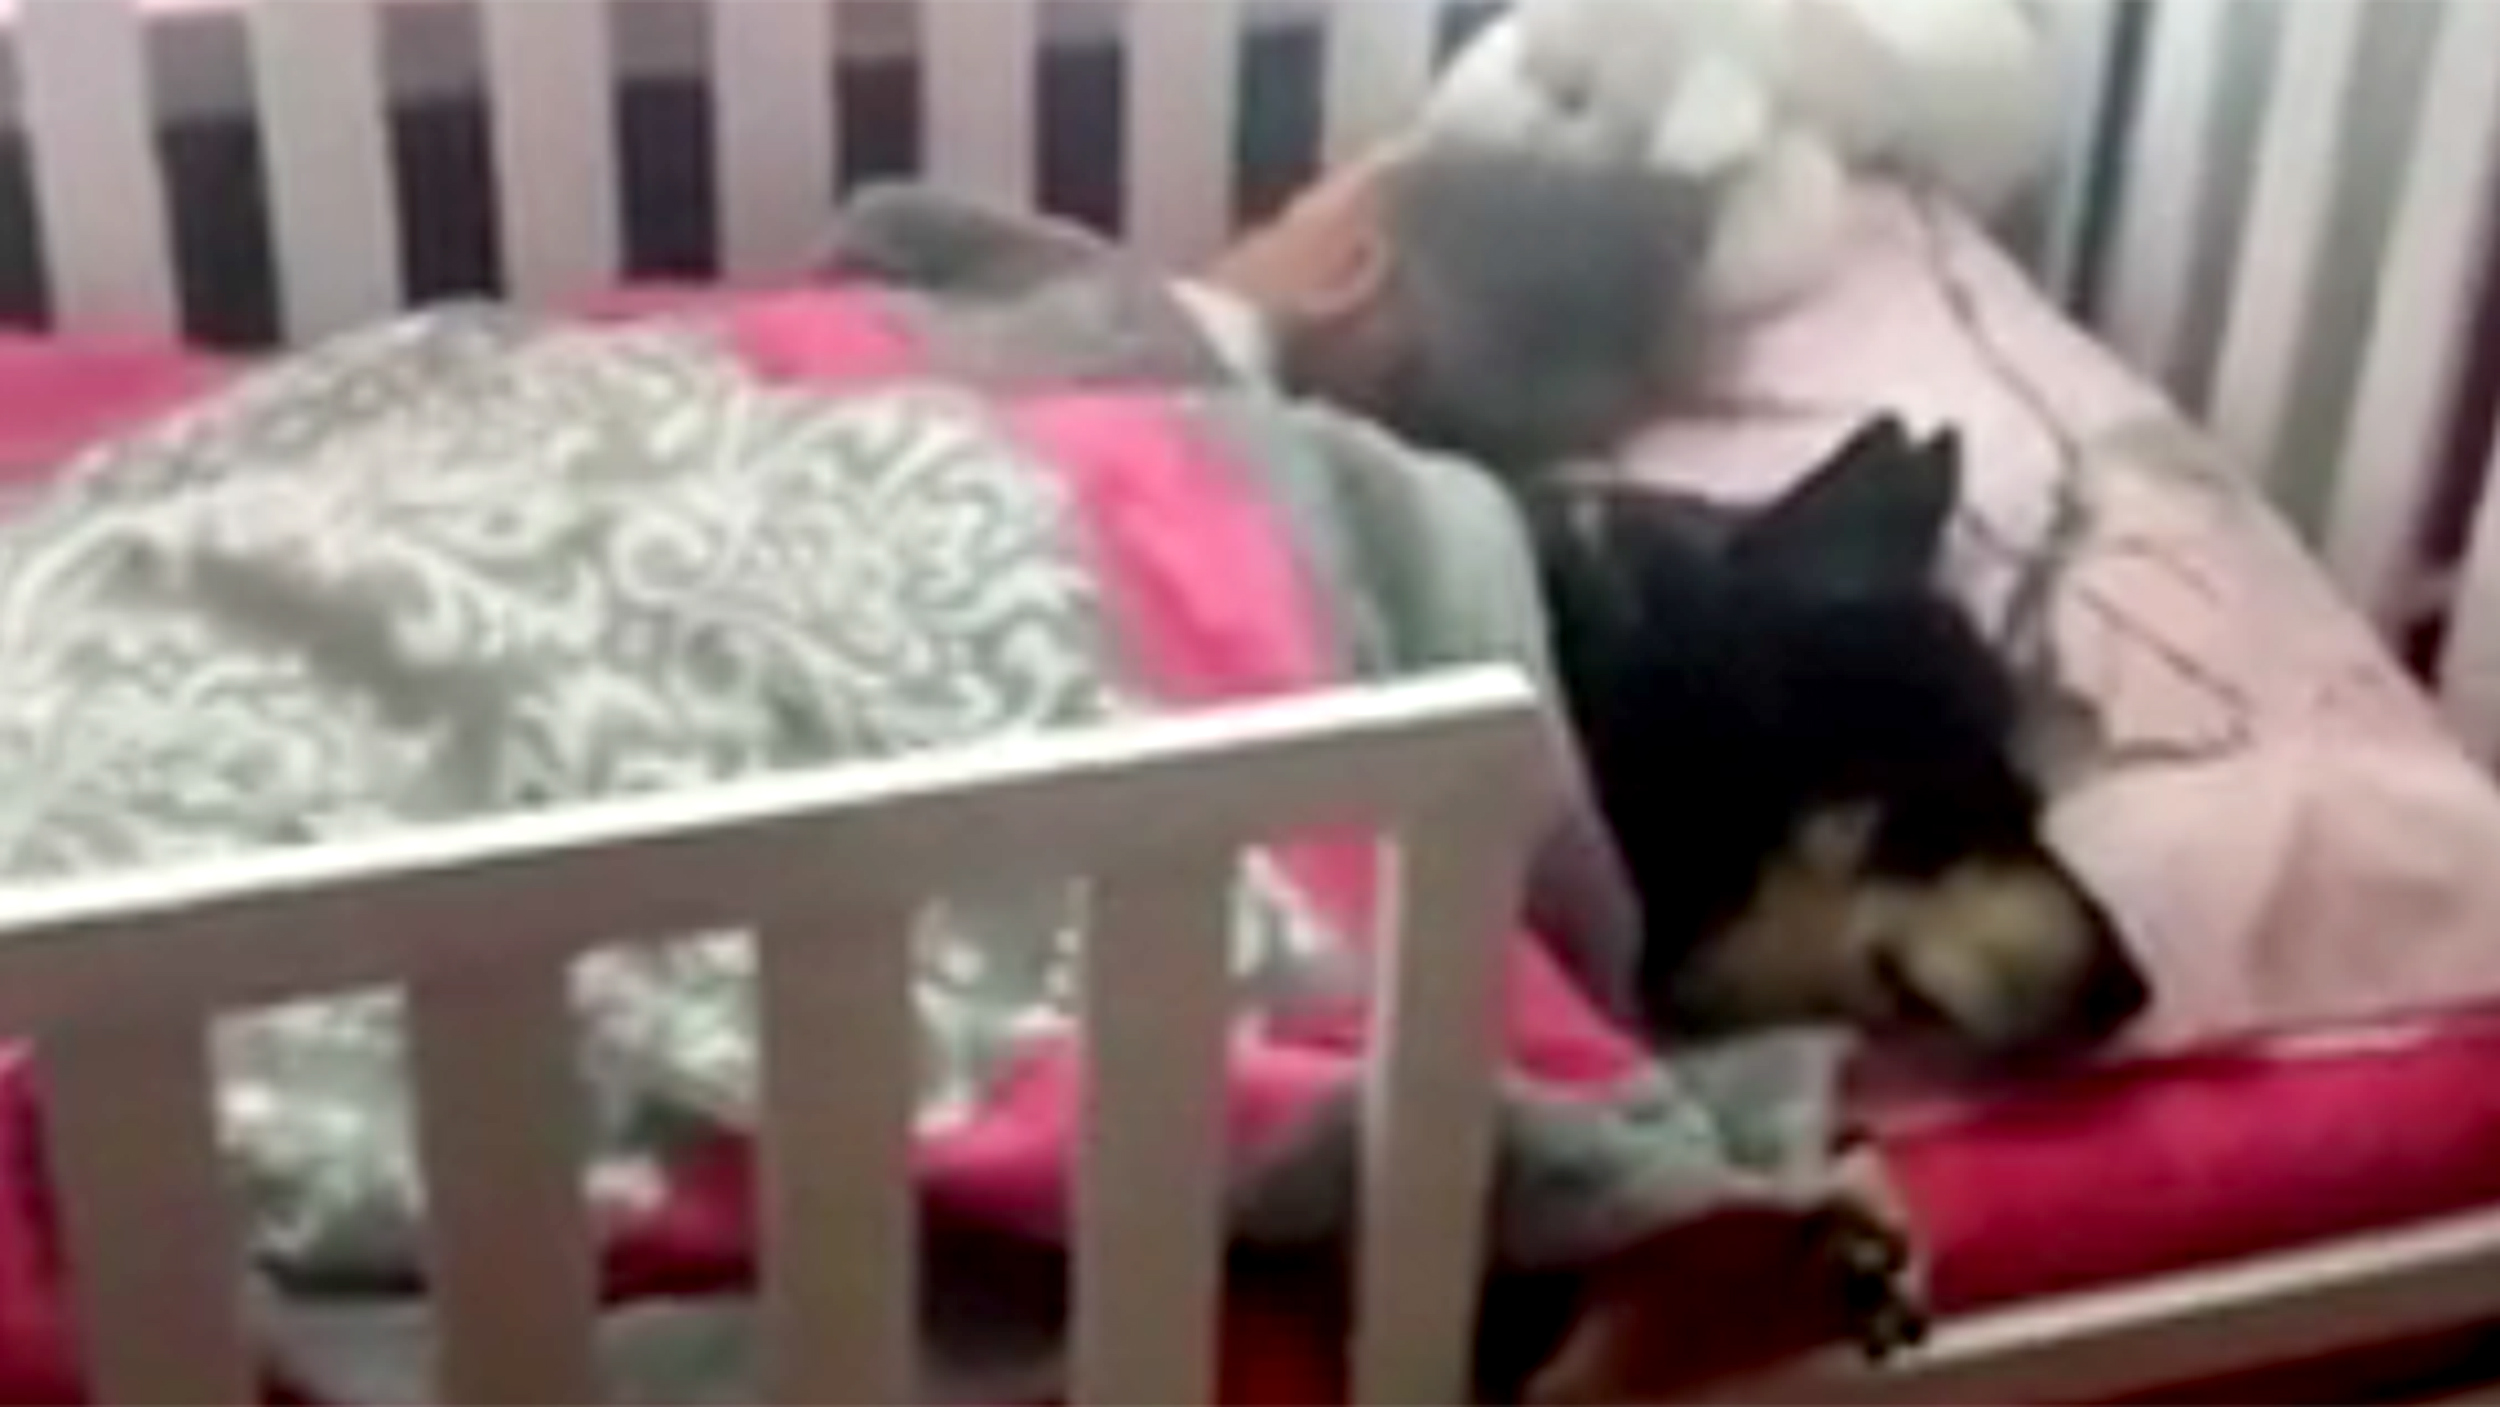 Dog Naps In Bed With Sleeping Toddler In Adorable Video